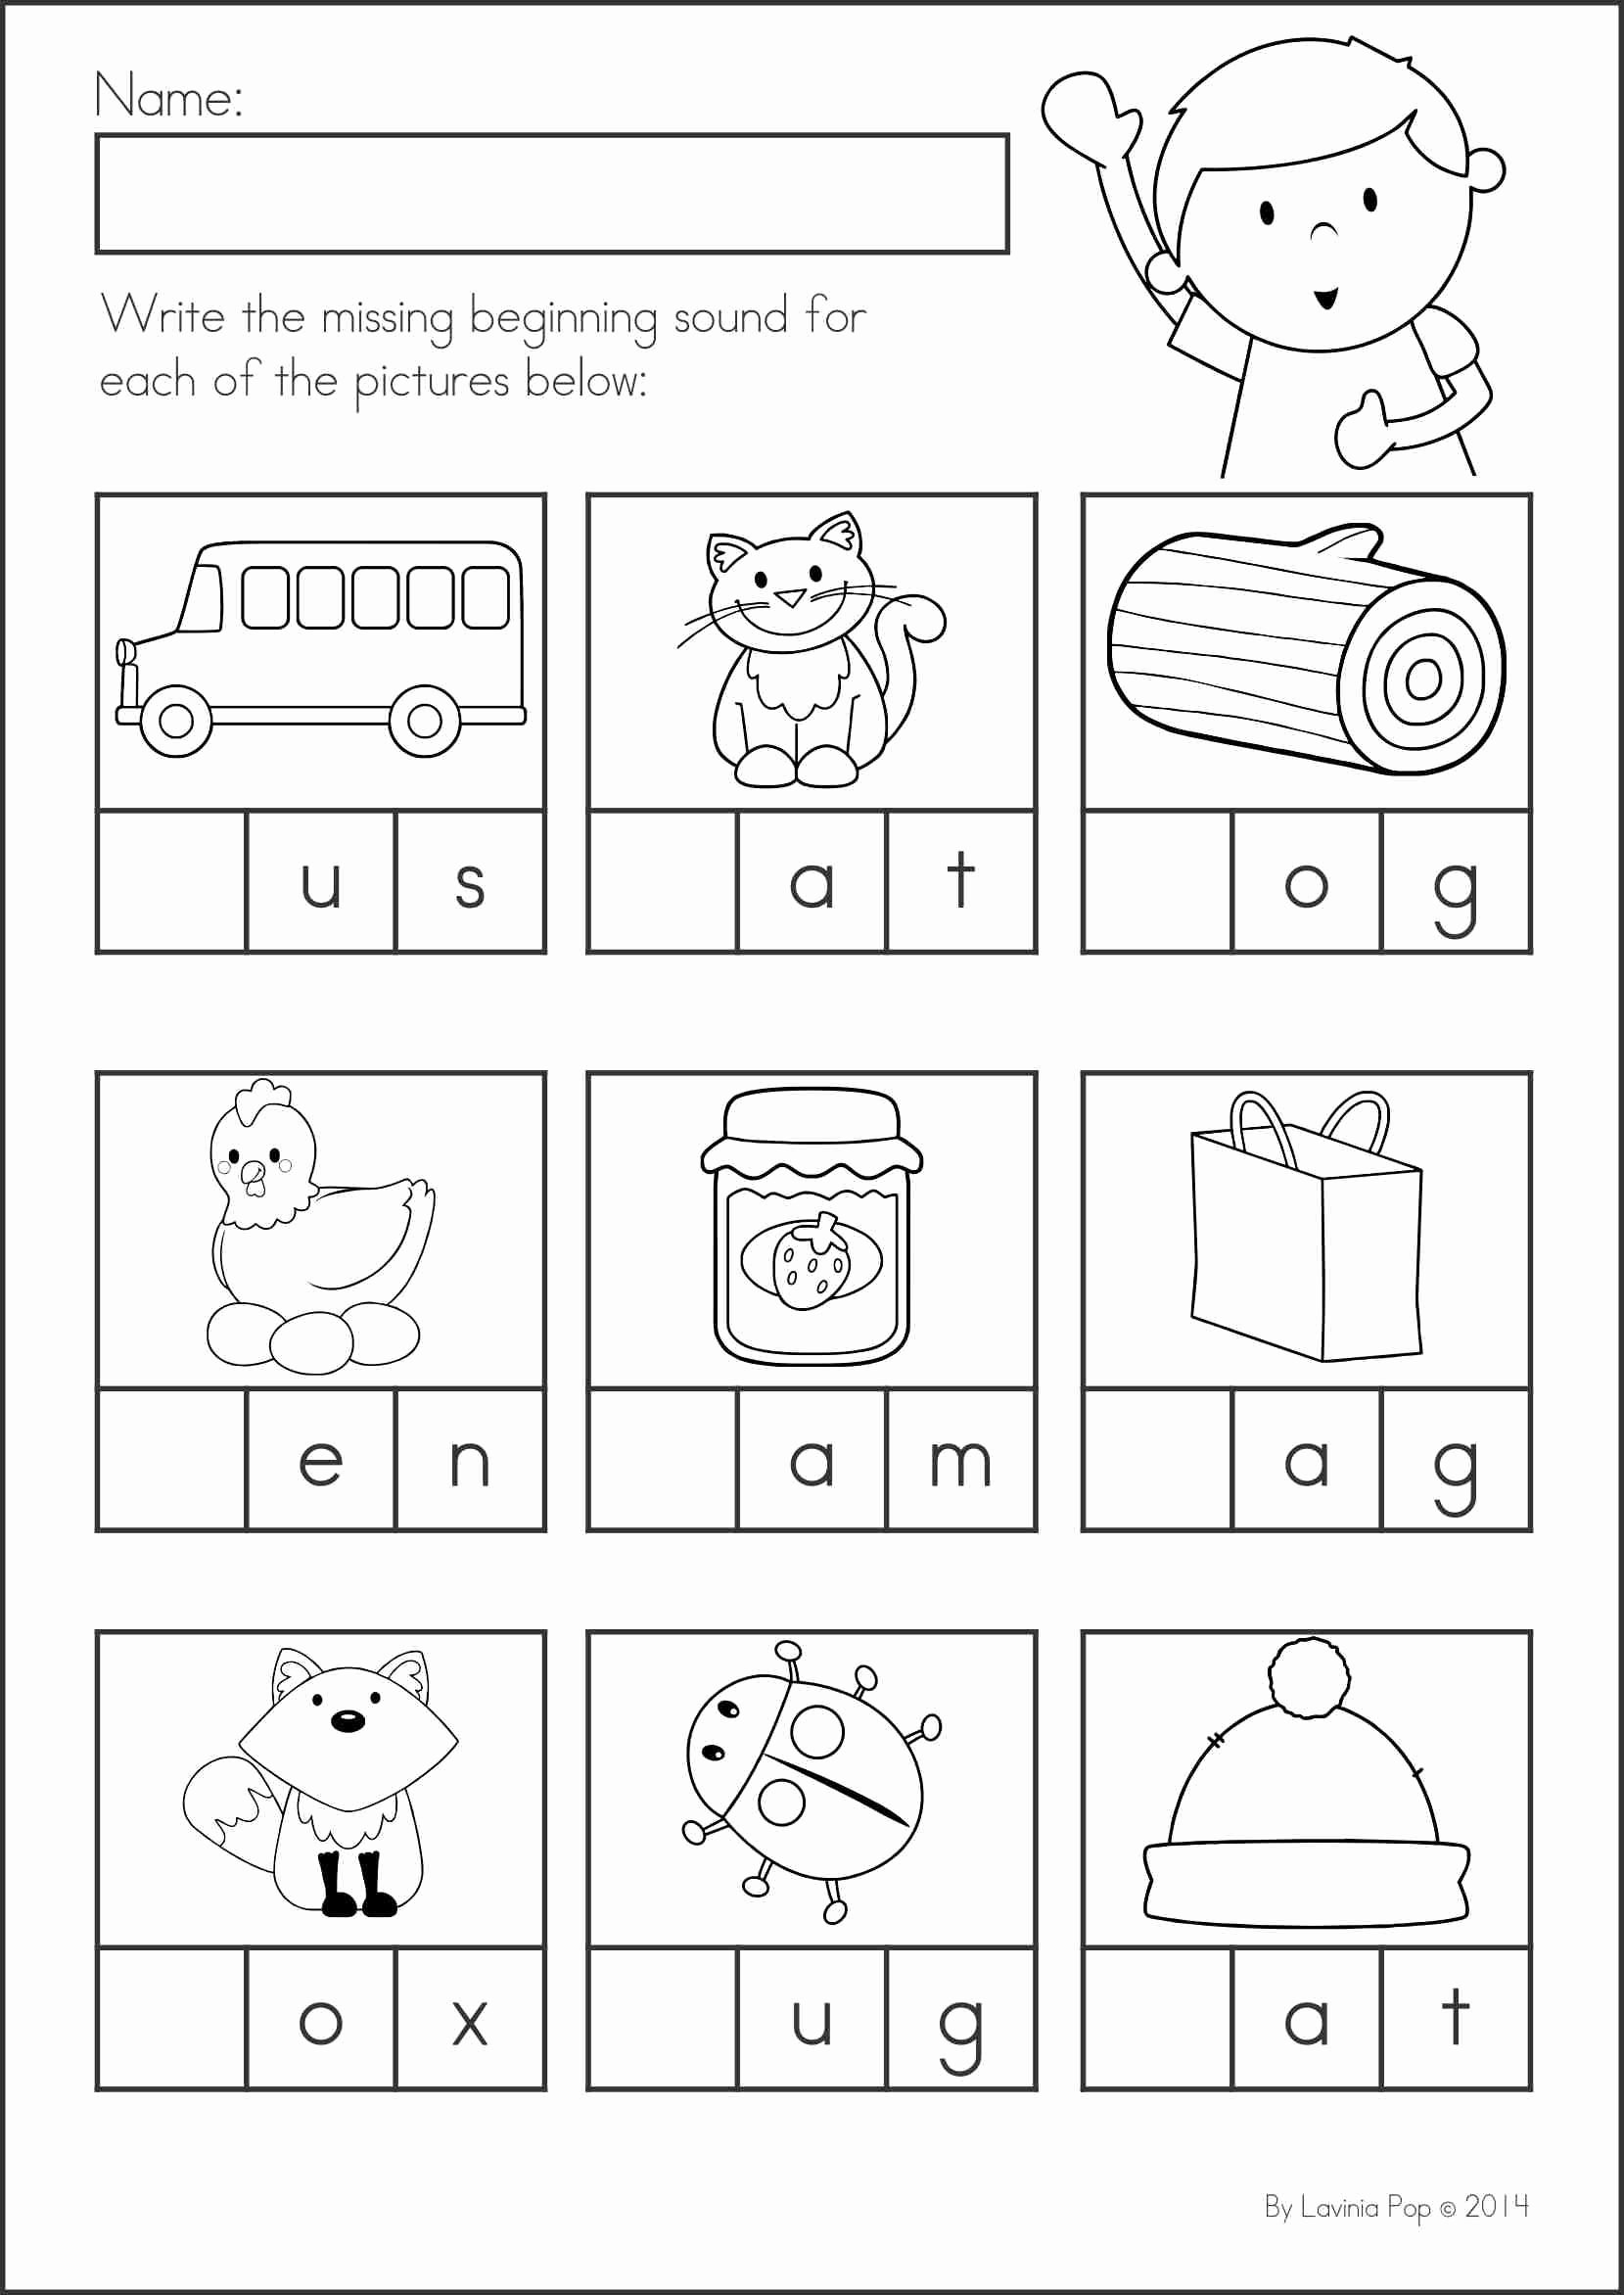 Literacy Worksheets for Preschoolers New Back to School Math & Literacy Worksheets and Activities No